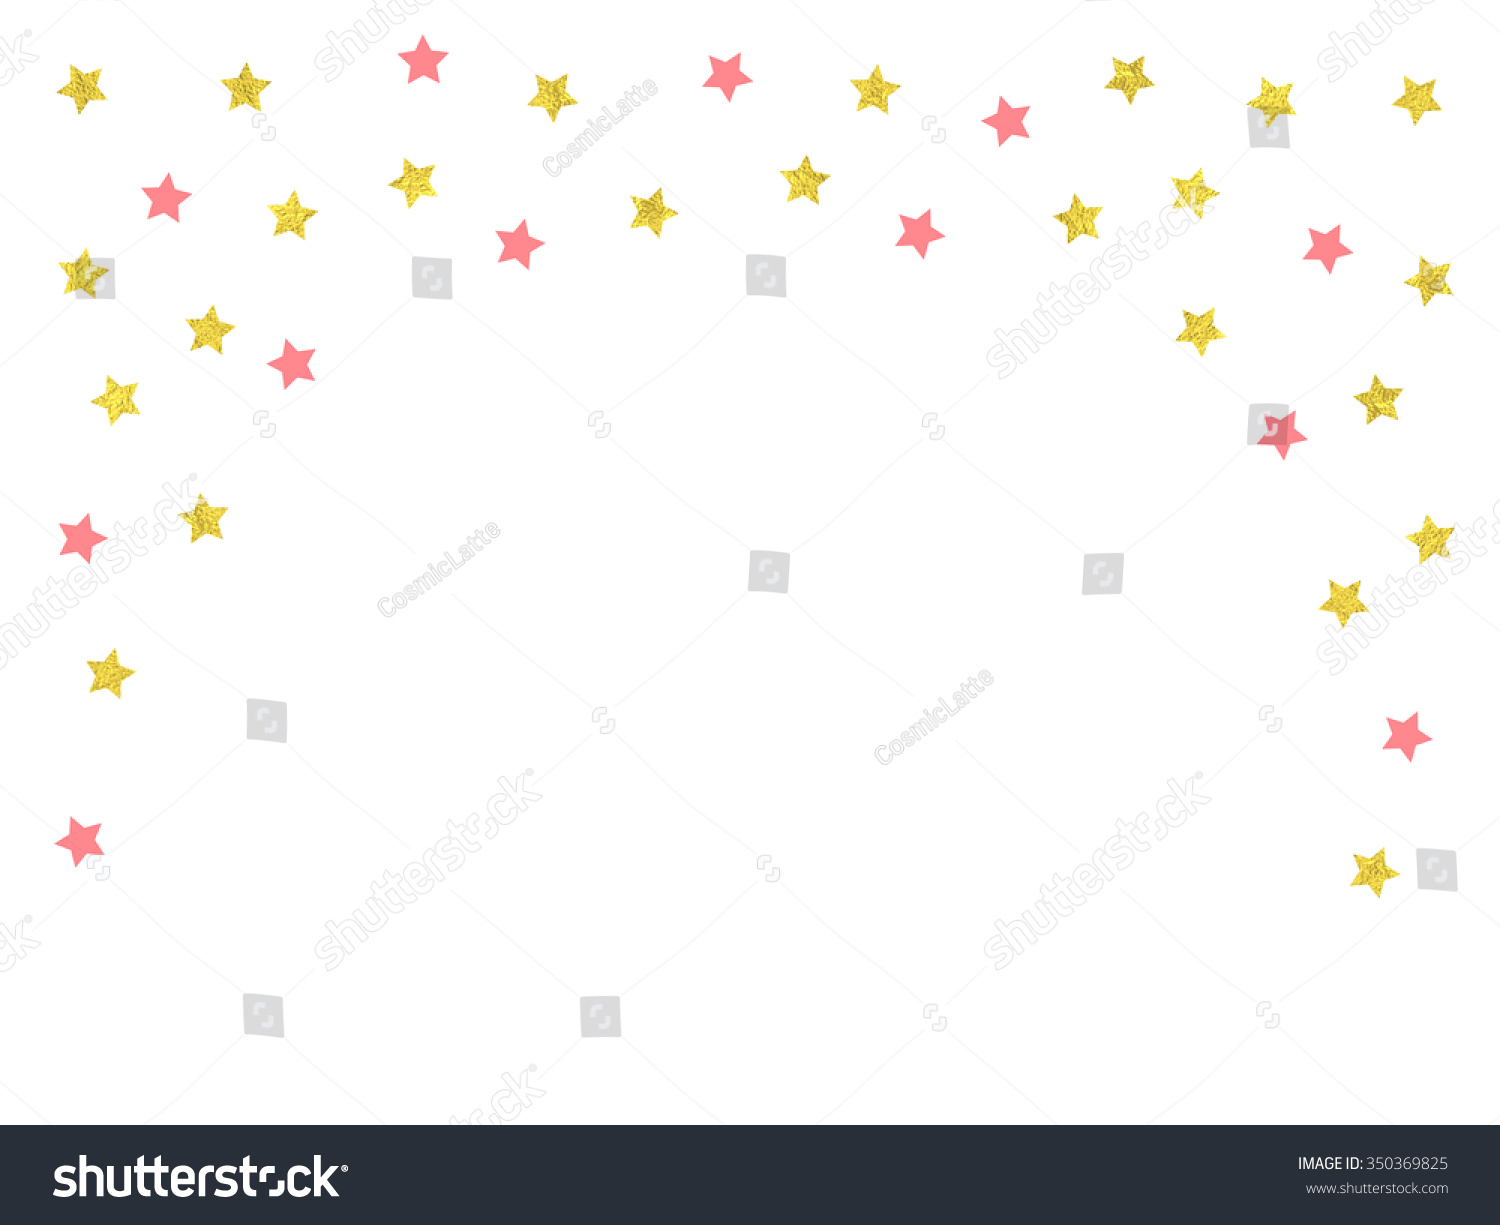 Gold and pink stars confetti border vector illustration for greeting